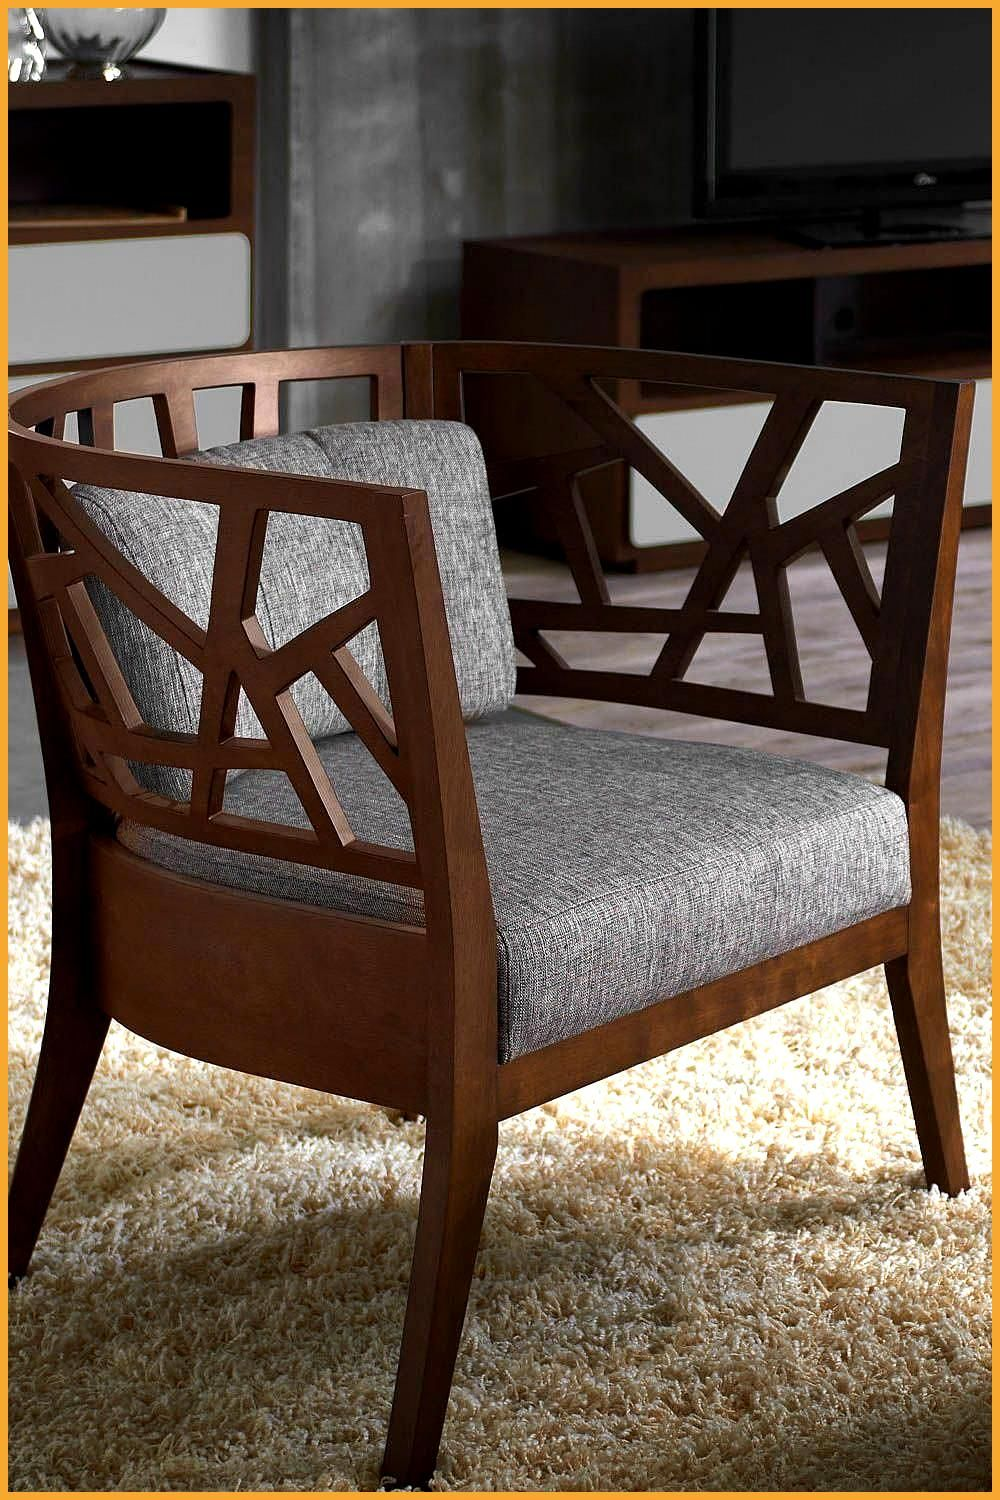 Chair Design Wooden Furniture Wooden Chair Quality Furniture Scandinavian Furniture Furniture Design Inspiration Beautiful Chair Great Price In 2020 Chair Design Wooden Furniture Design Inspiration Wooden Sofa Designs